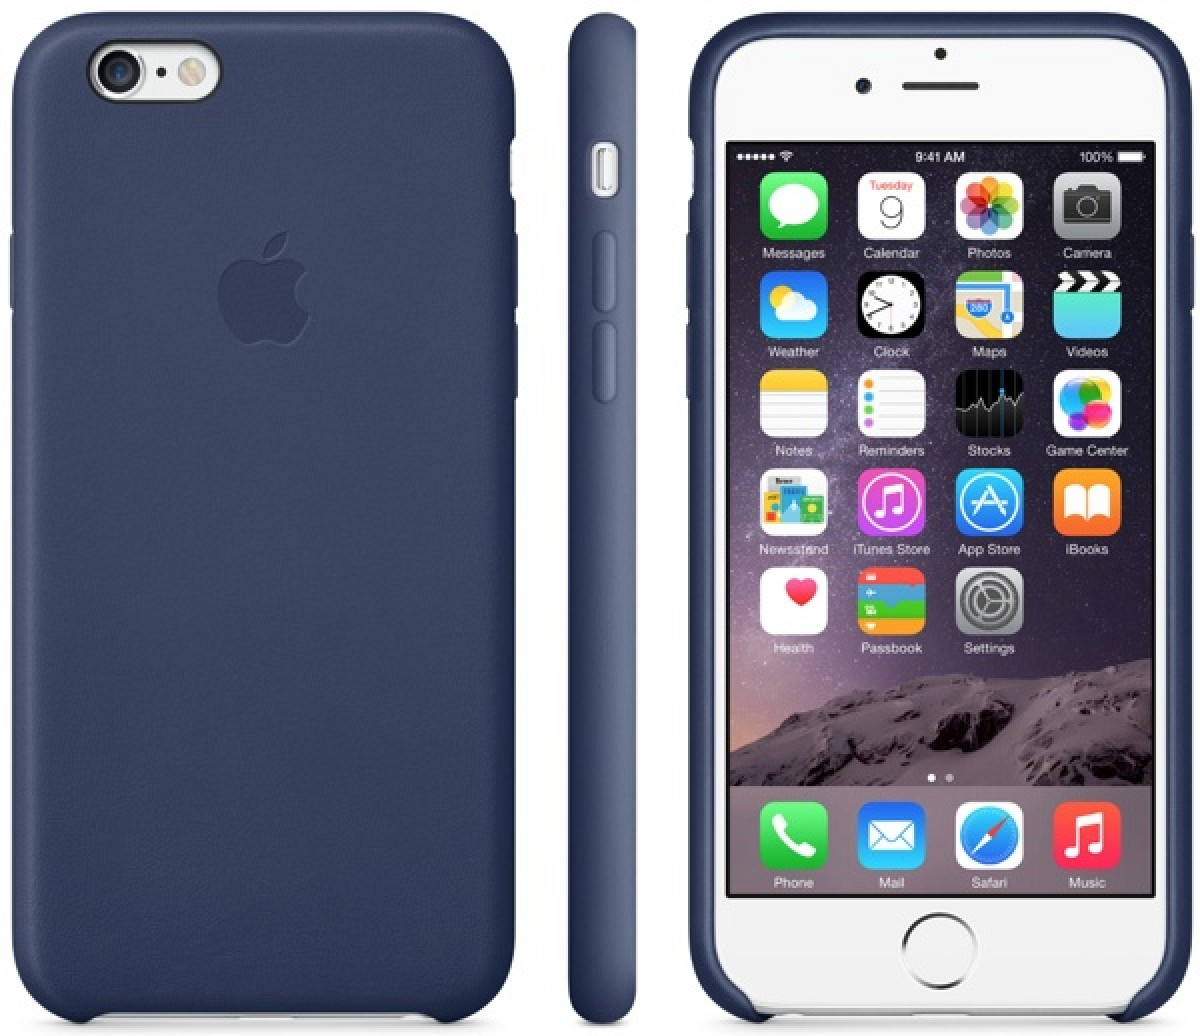 f01b42381aa0 Best iPhone 6 and 6 Plus Cases - MacRumors